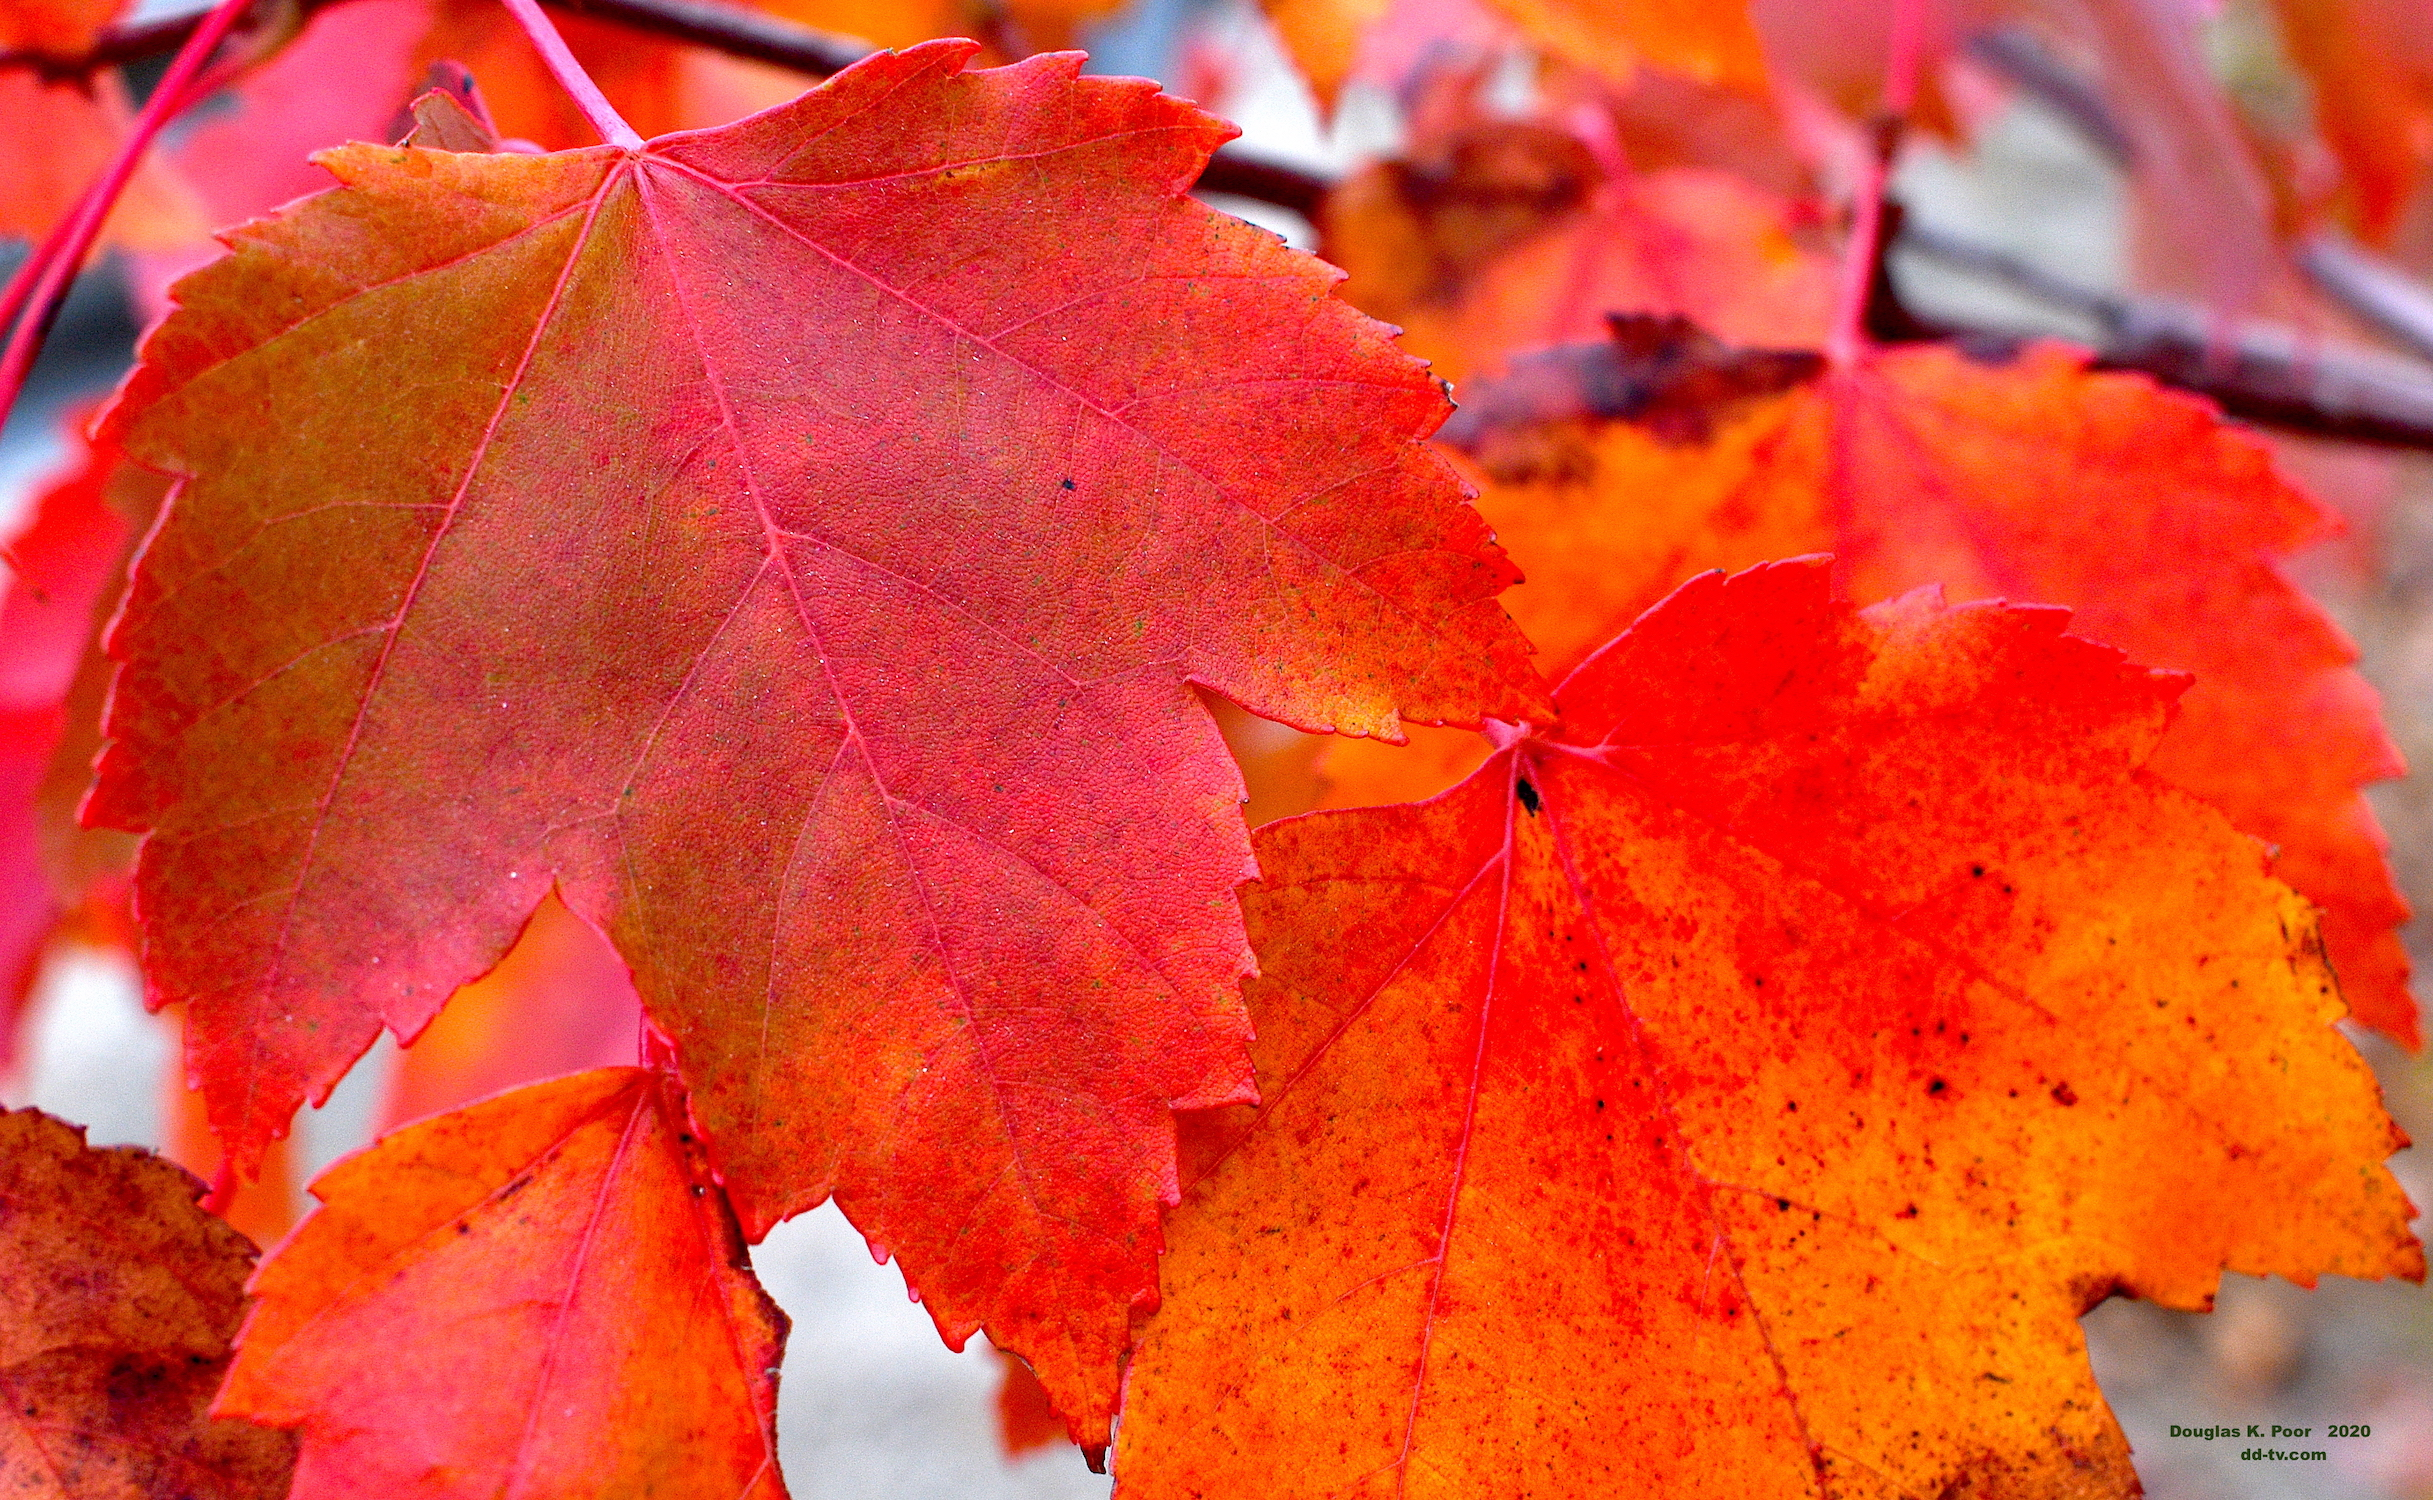 ====================RED-AND-ORANGE-MAPLE-LEAVES-CLOSE=================================================================================================================================================RED-AND-ORANGE-MAPLE-LEAVES-CLOSE